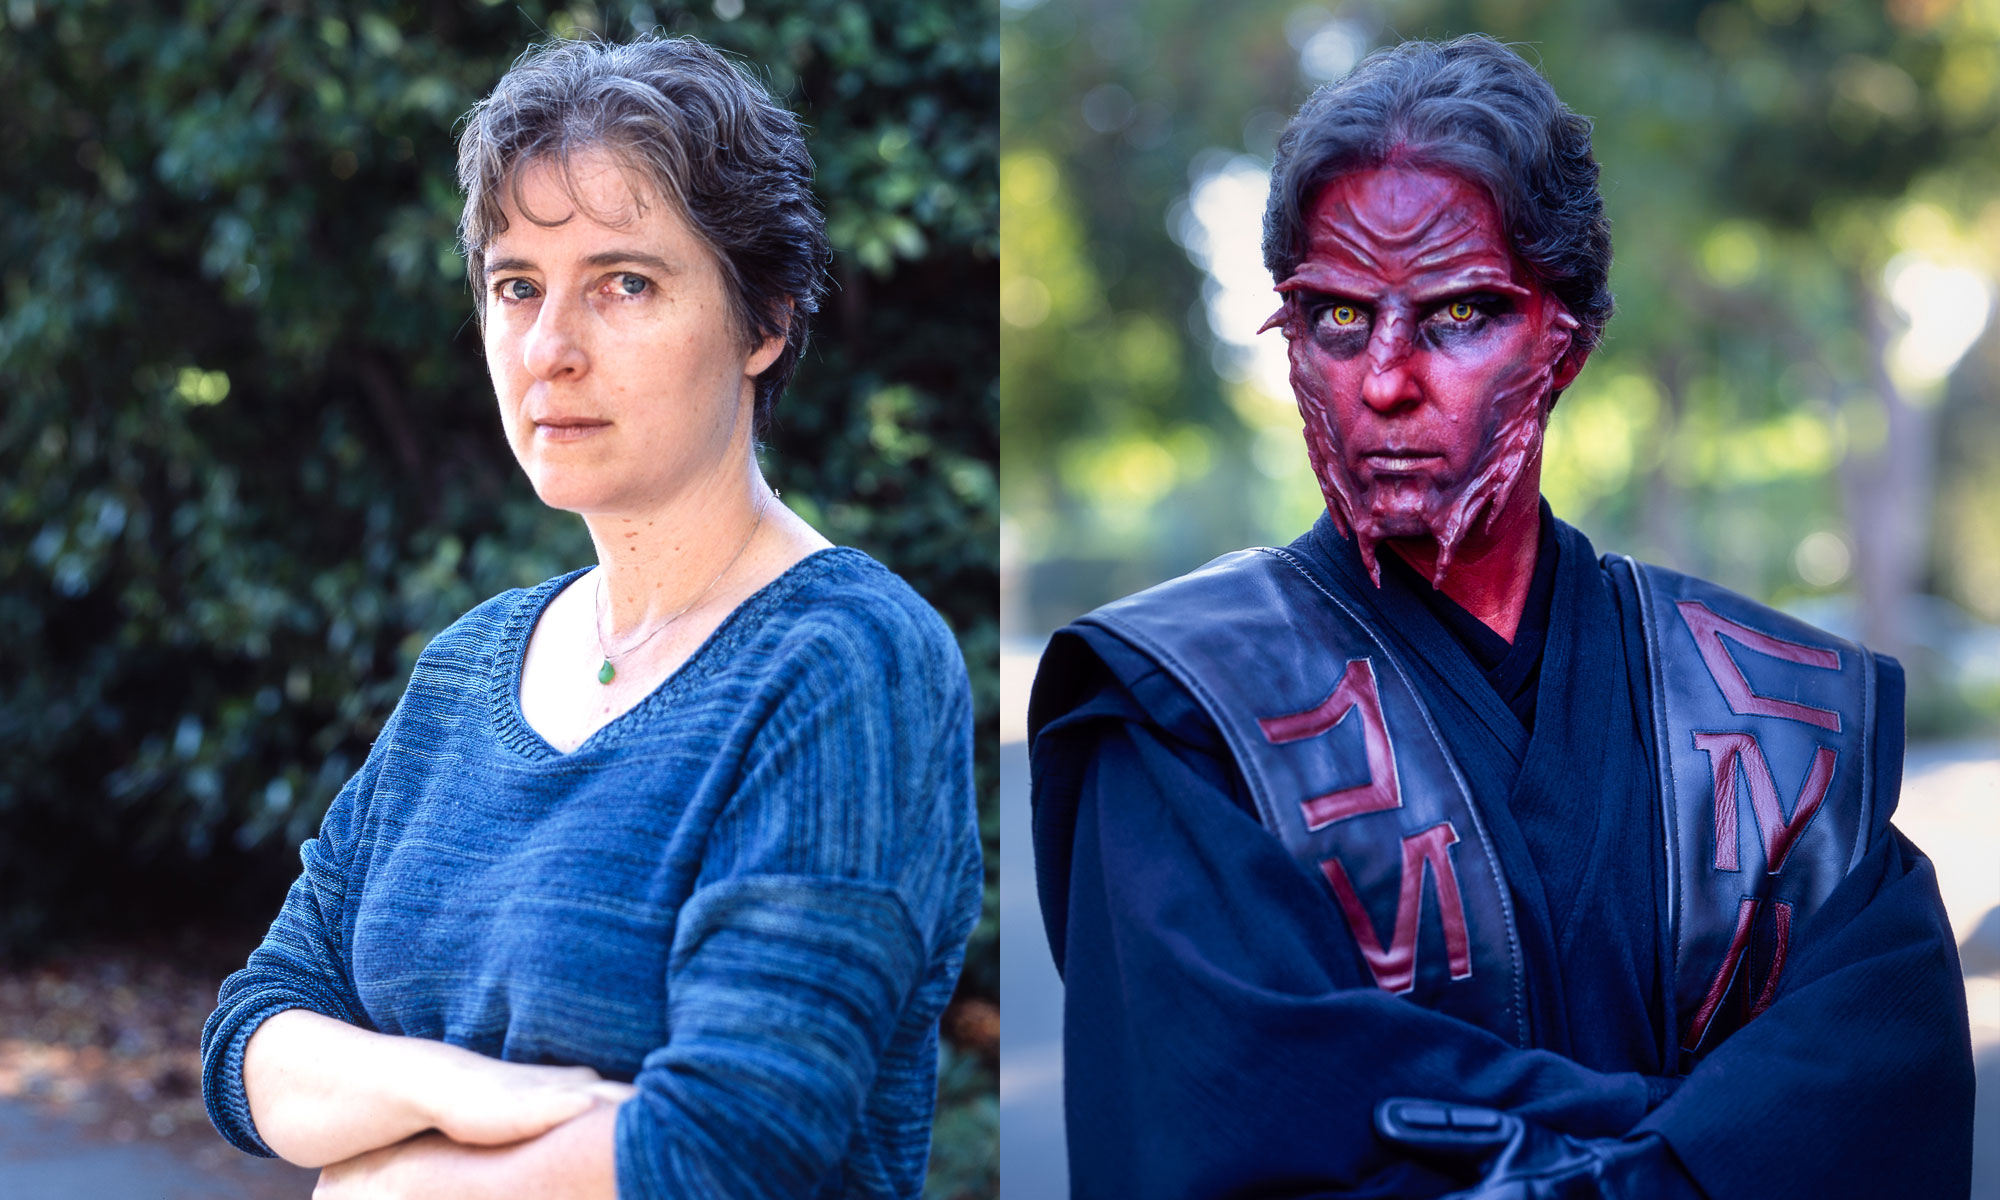 Cosplay: Transformations